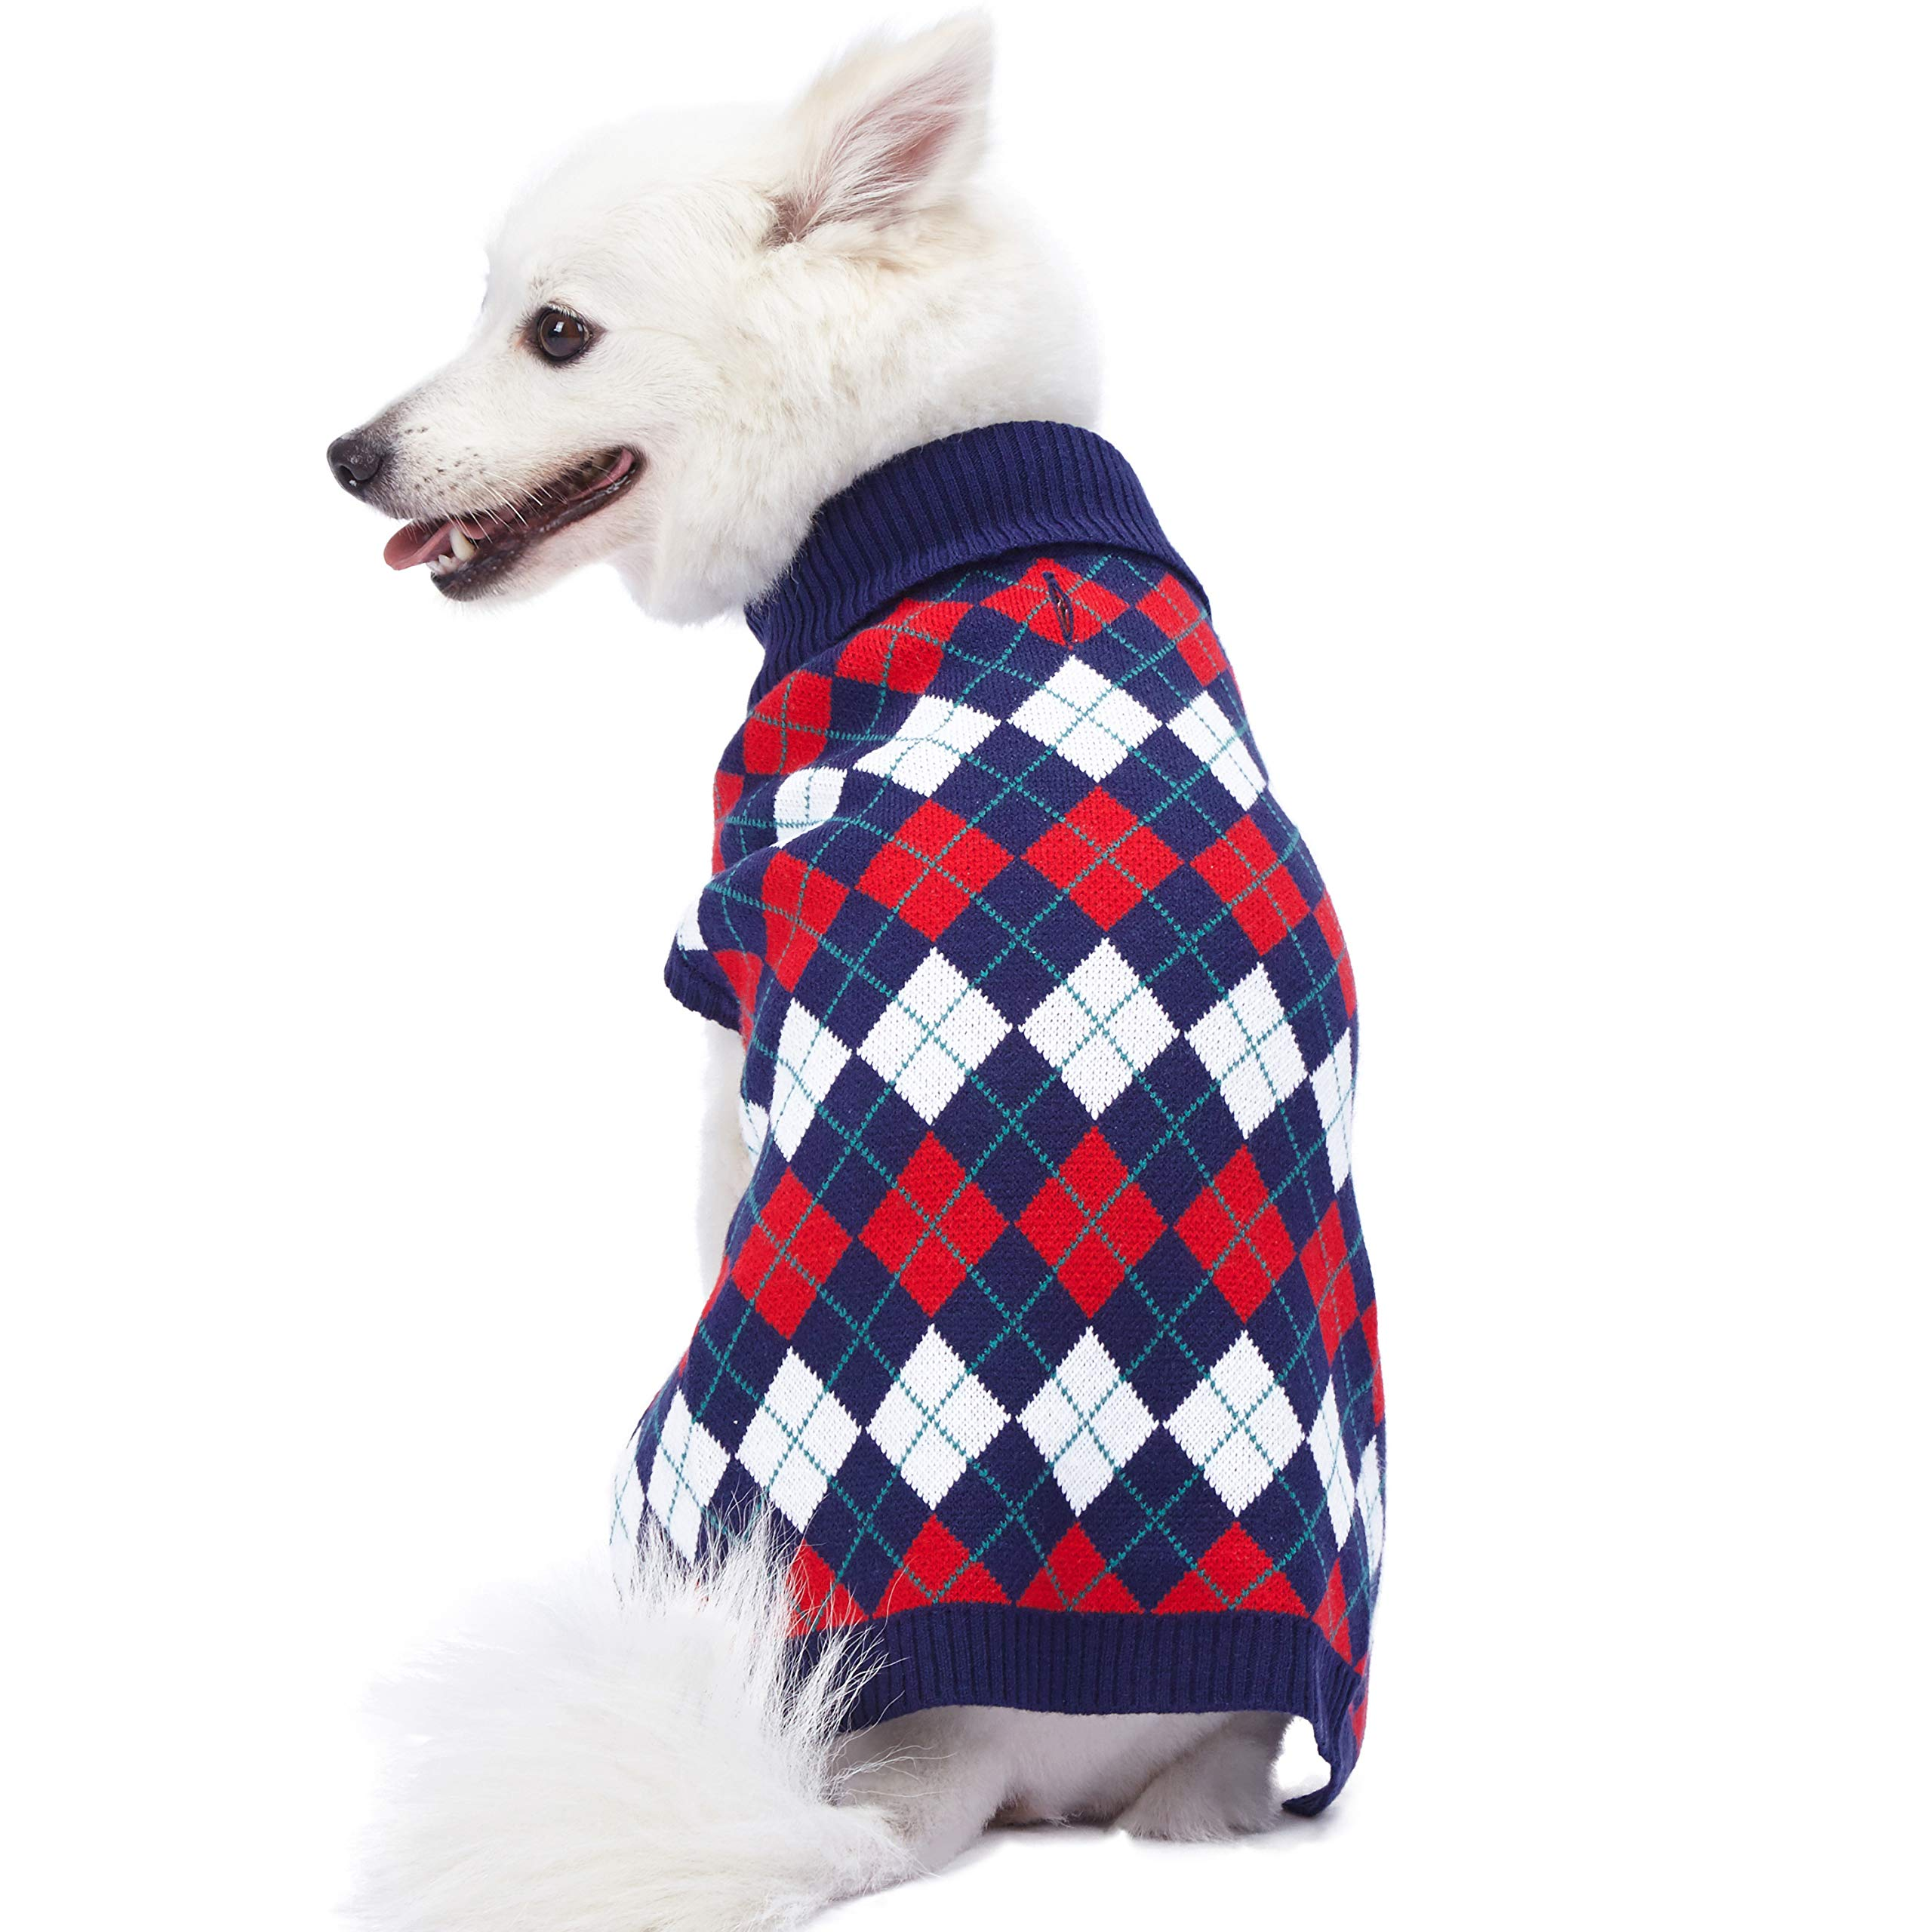 Blueberry Pet 2019 New 5 Patterns Chic Argyle All Over Dog Sweater in Navy Blue, Back Length 20'', Pack of 1 Clothes for Dogs